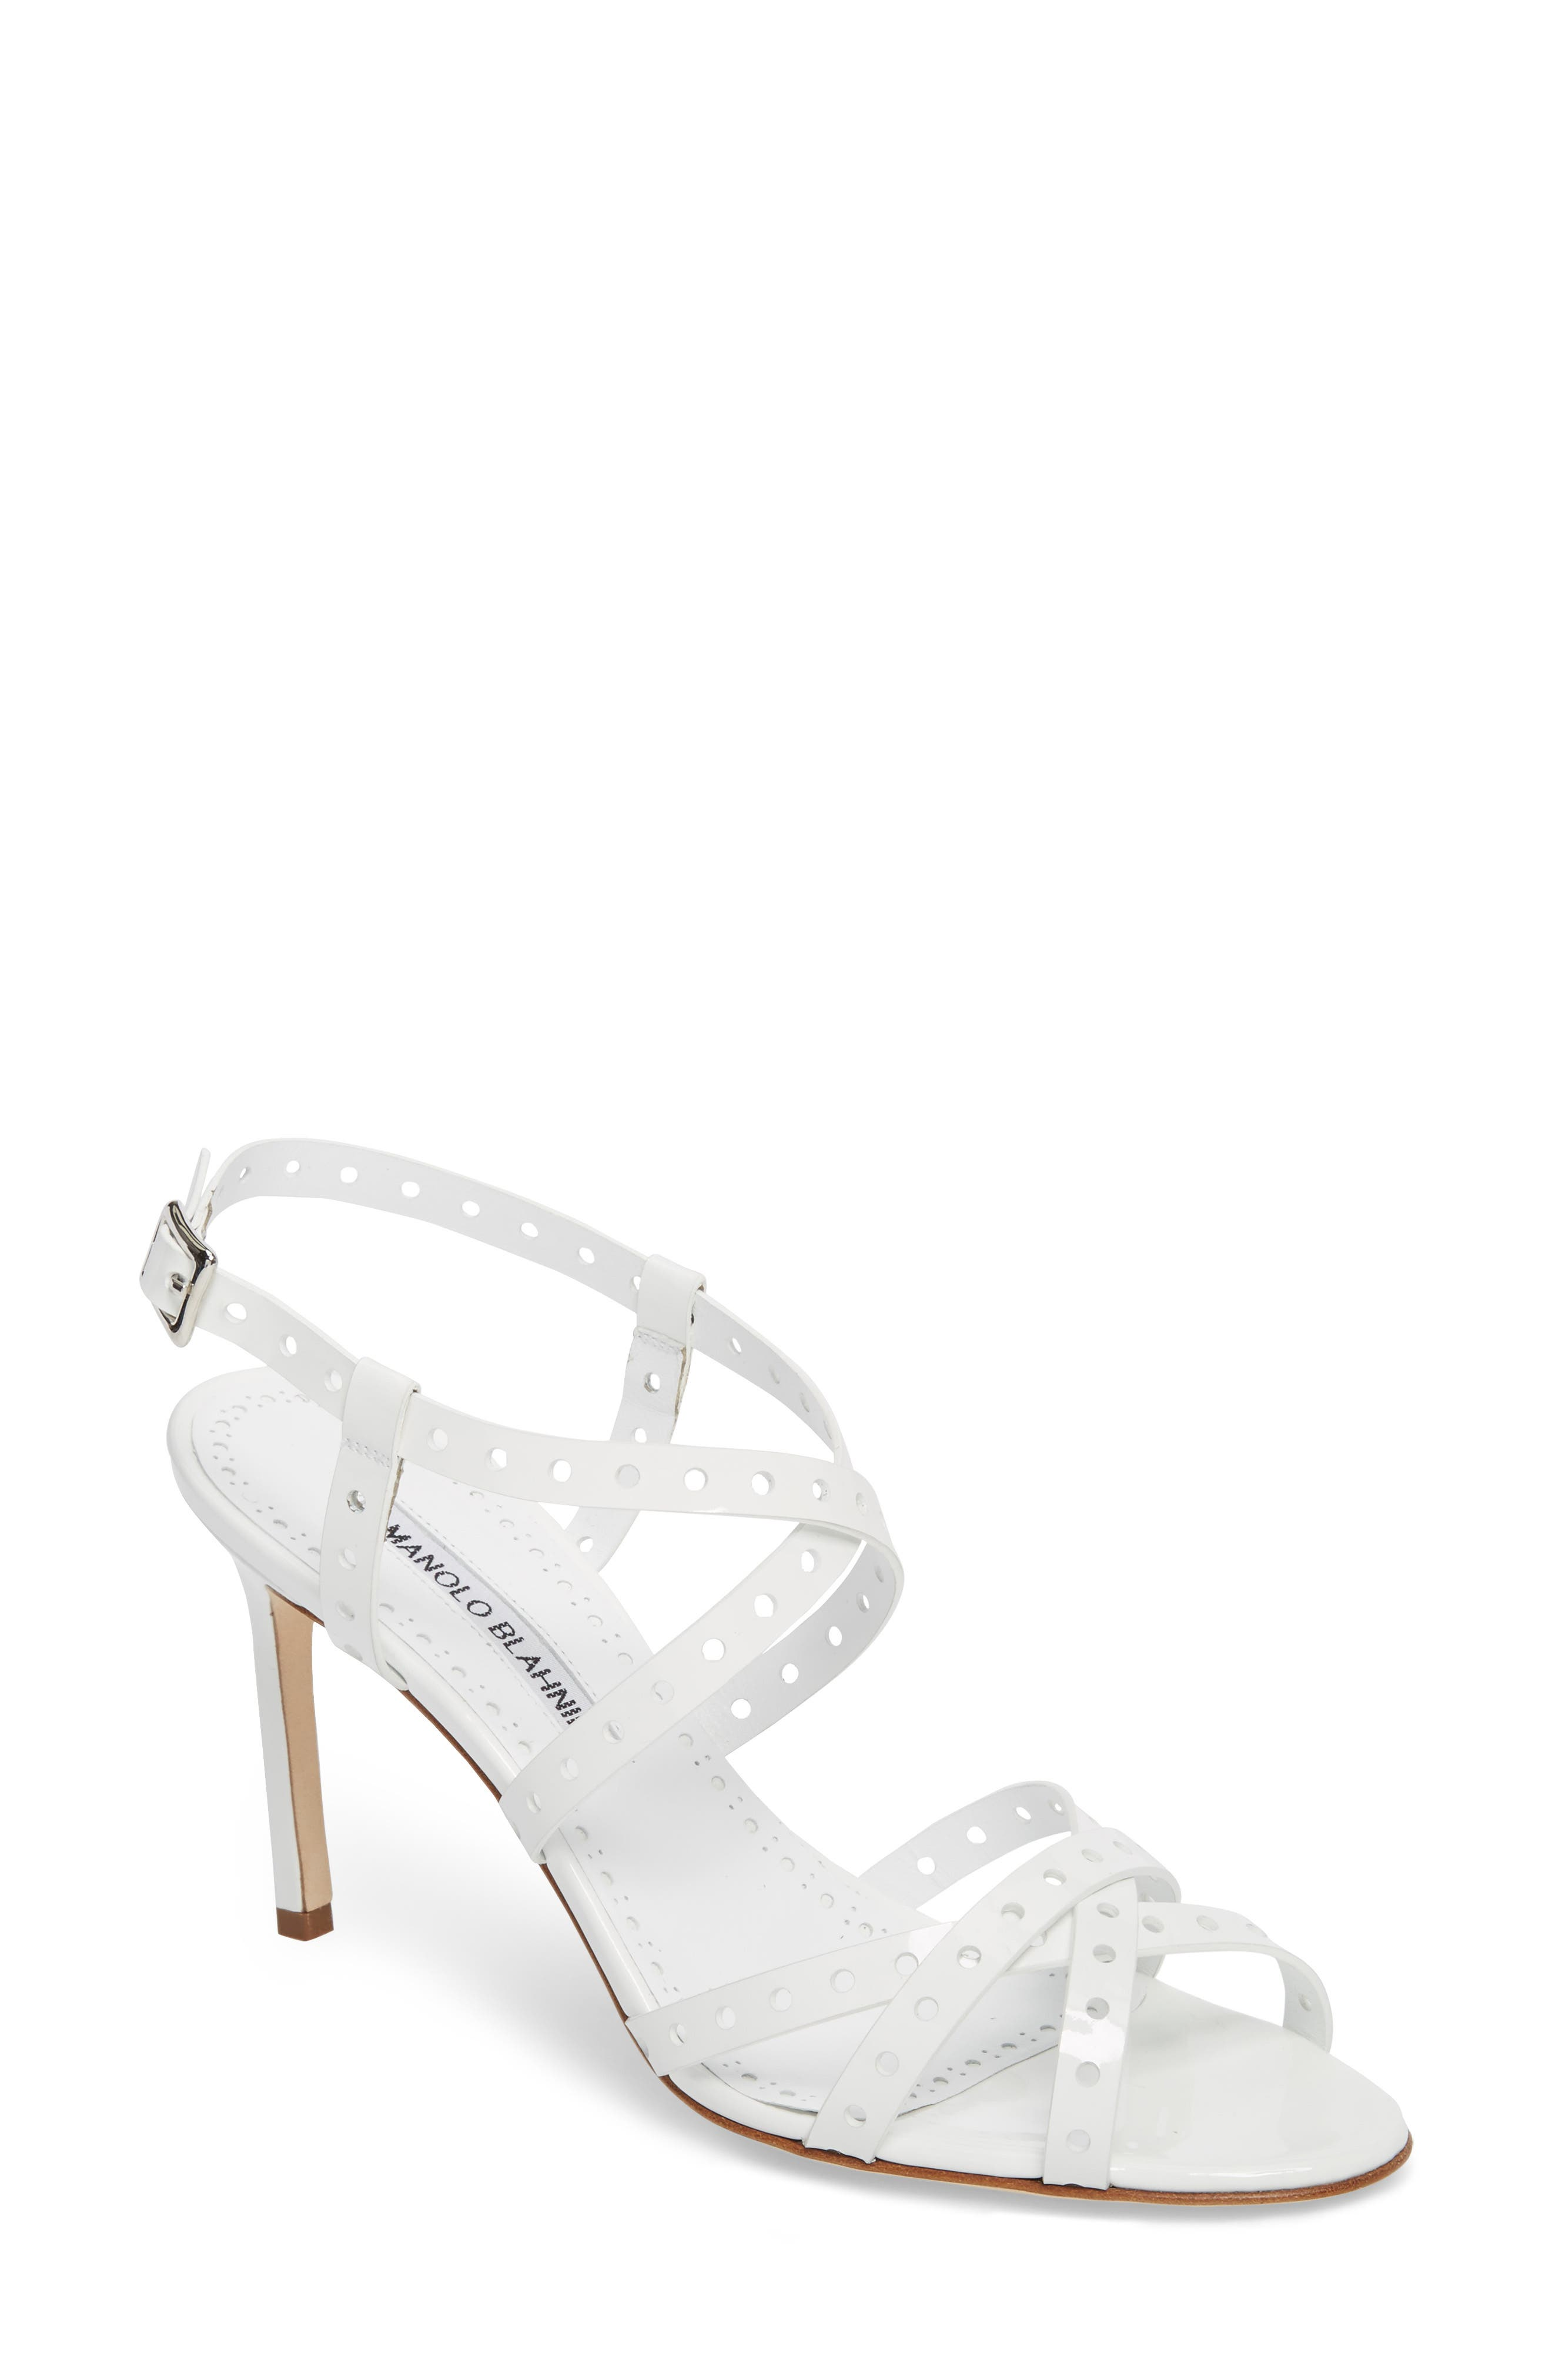 Main Image - Manolo Blahnik Demure Perforated Strappy Sandal (Women)